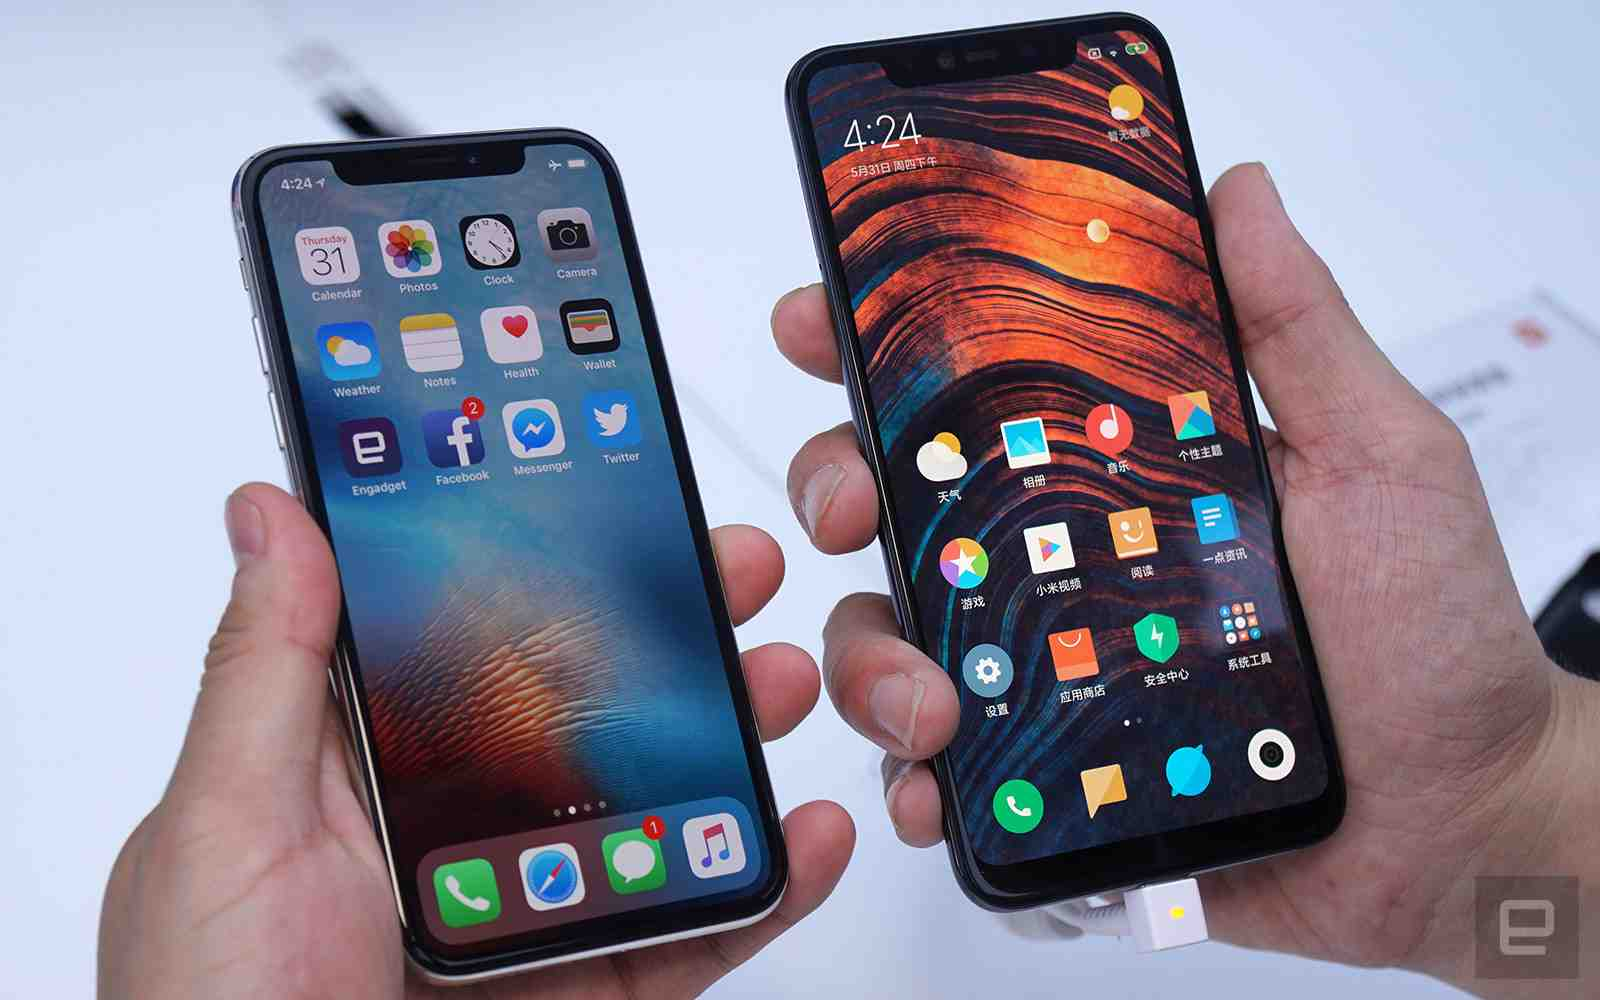 Xiaomi's Mi 8 Explorer  Vs Apple's iPhone X Front View